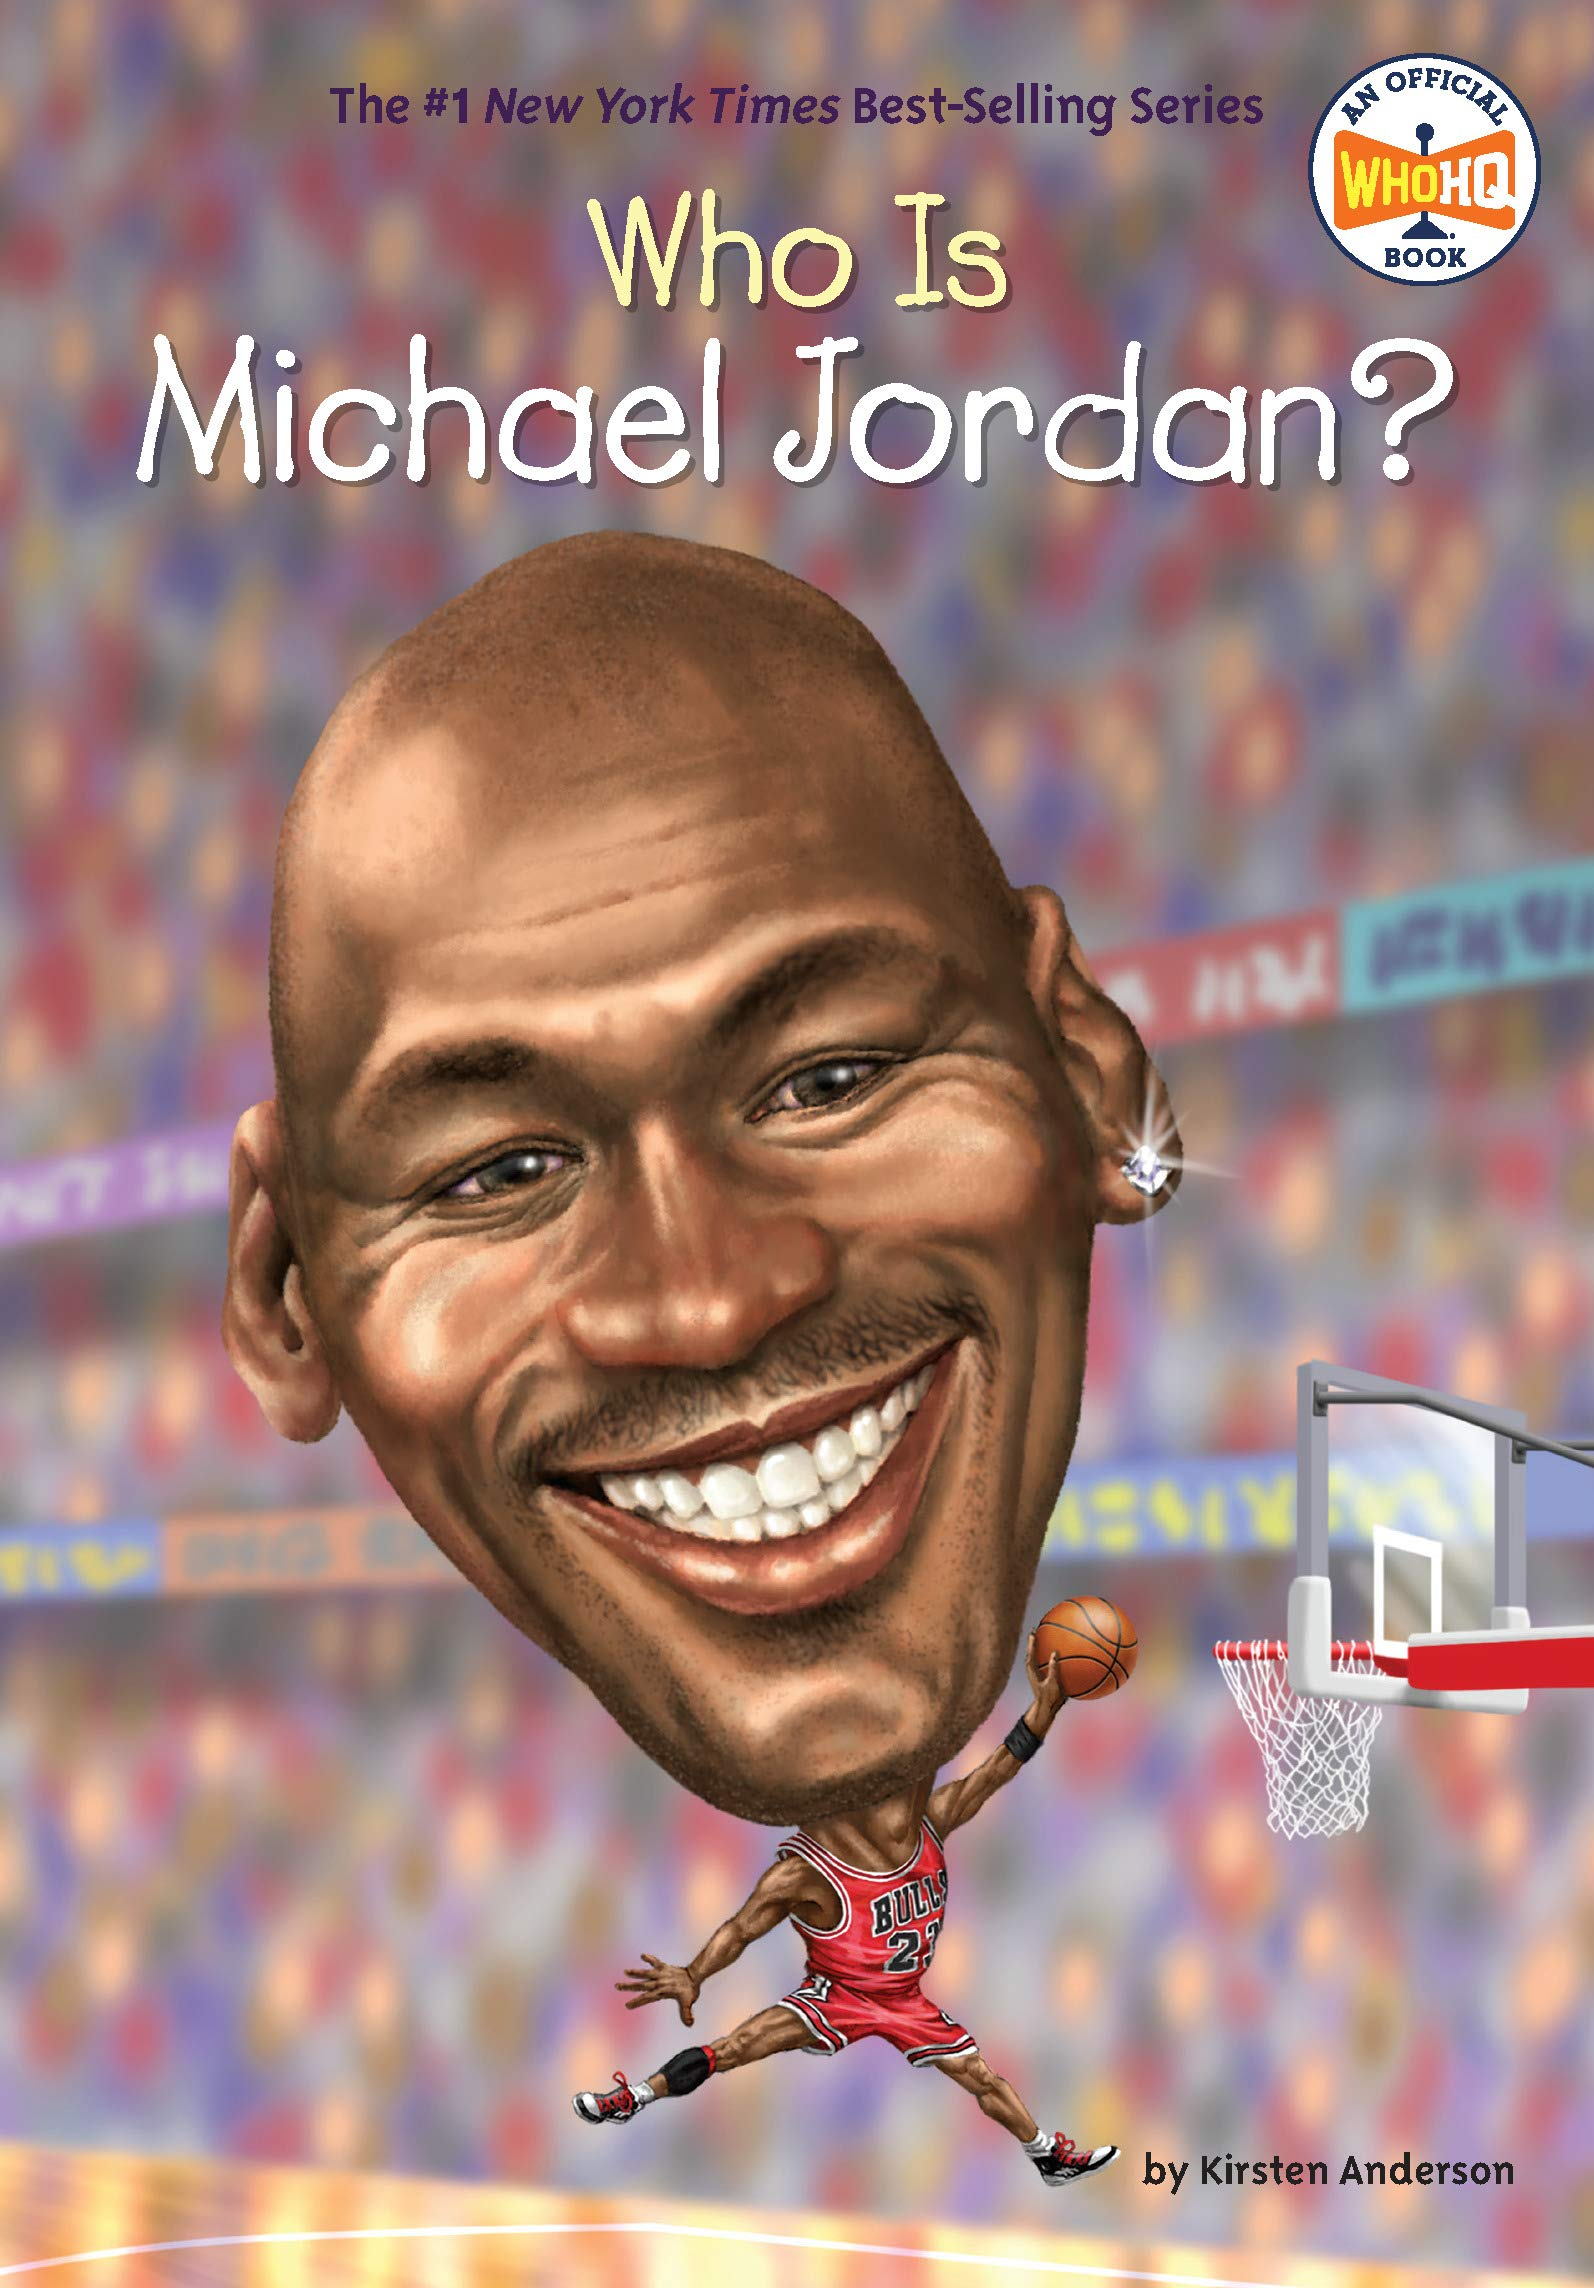 Who Is Michael Jordan? (Who Was?) Paperback – February 5, 2019 Kirsten Anderson Who HQ Dede Putra Penguin Workshop